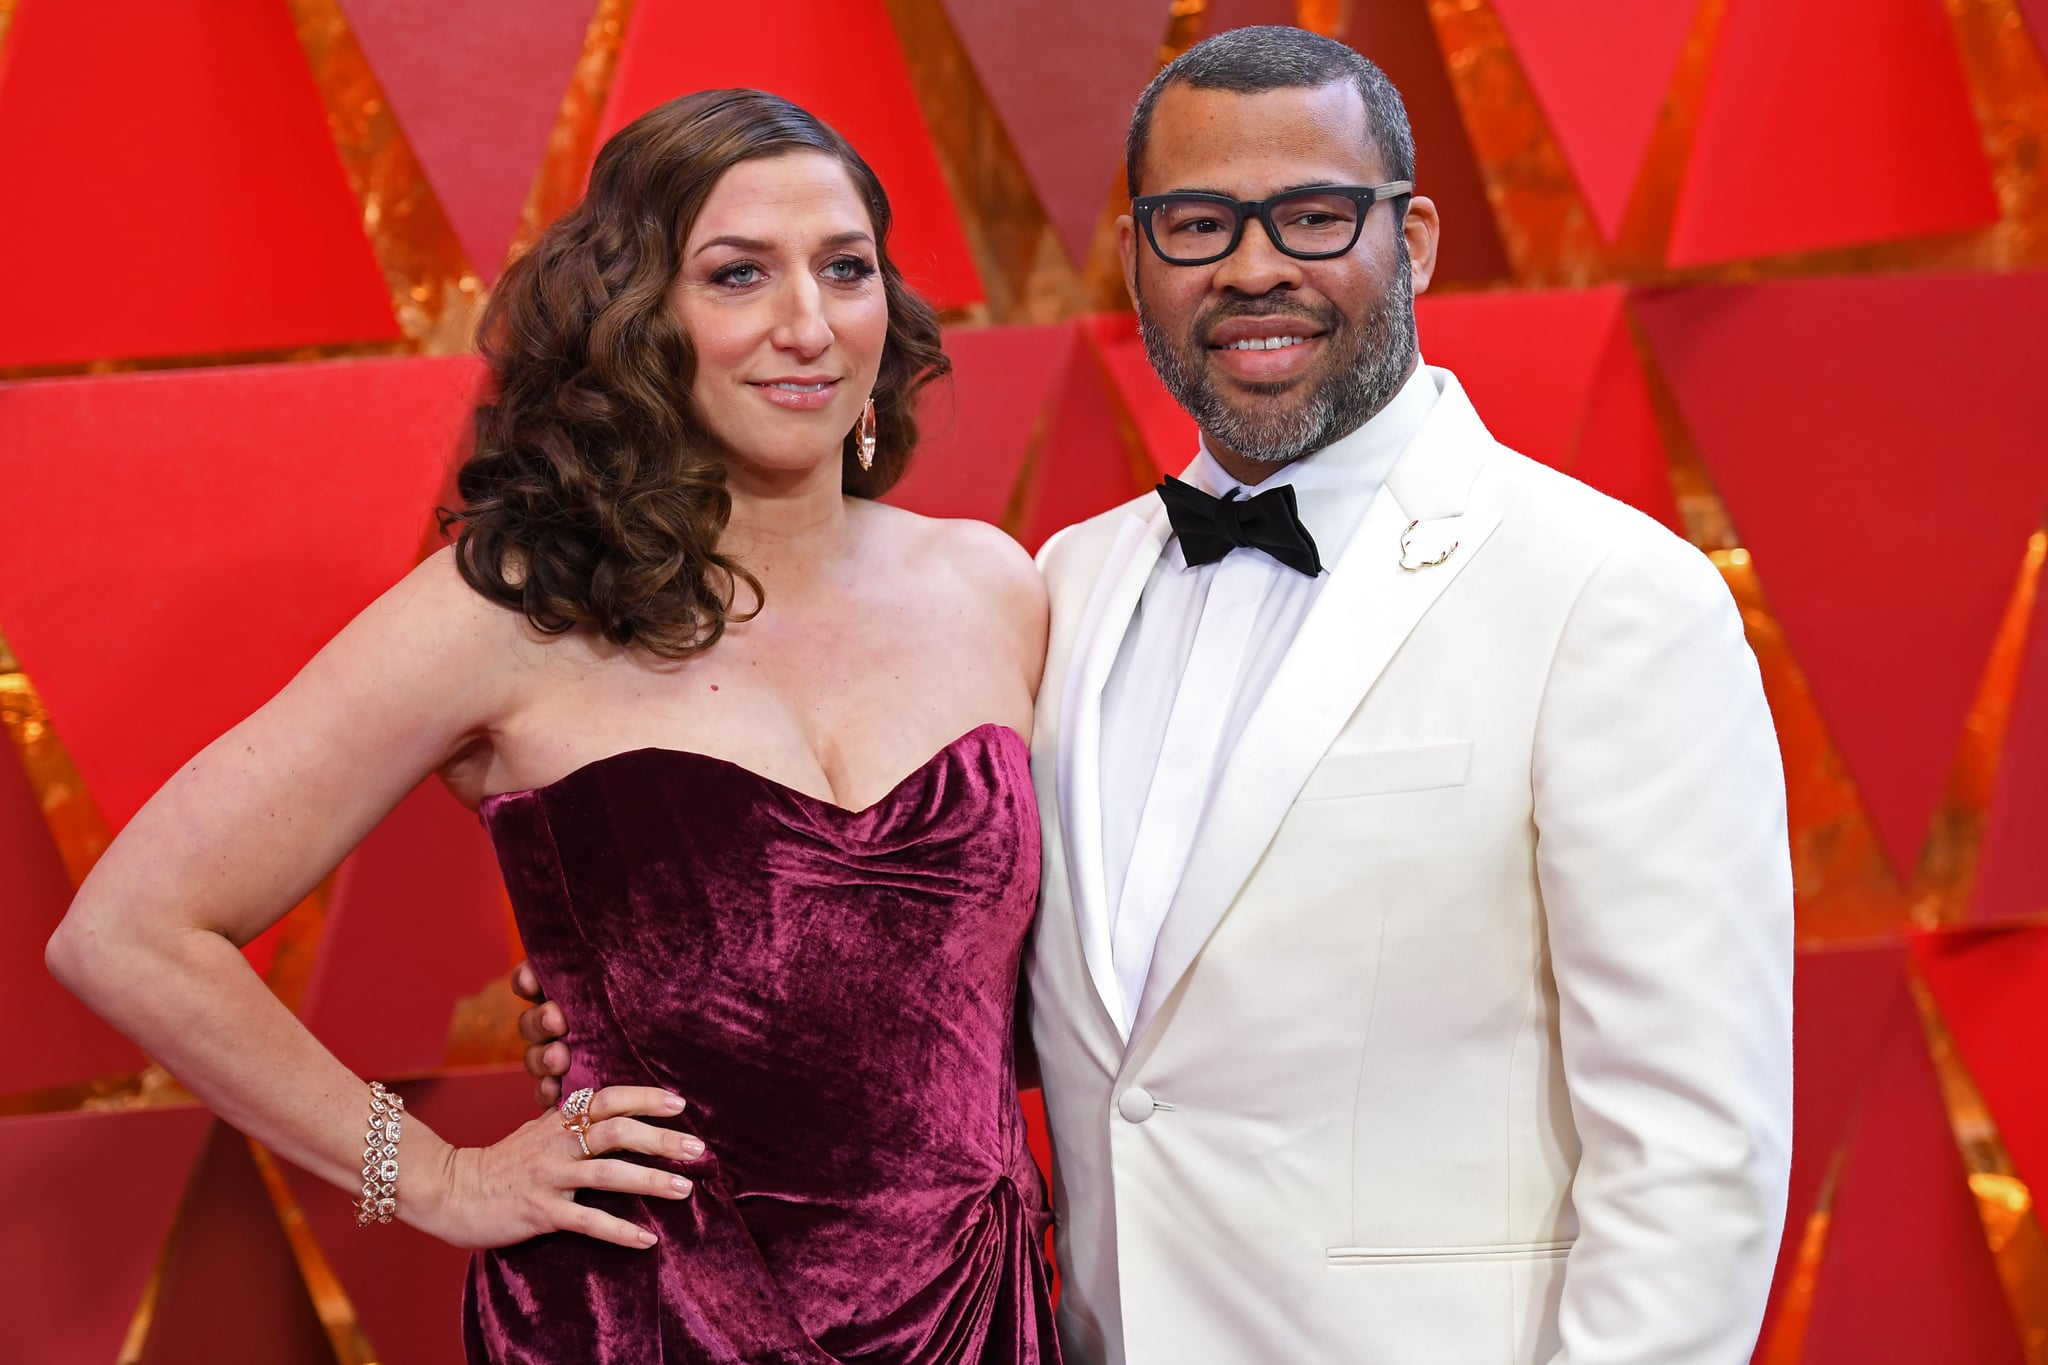 Jordan Peele scoops historic win at the Oscars